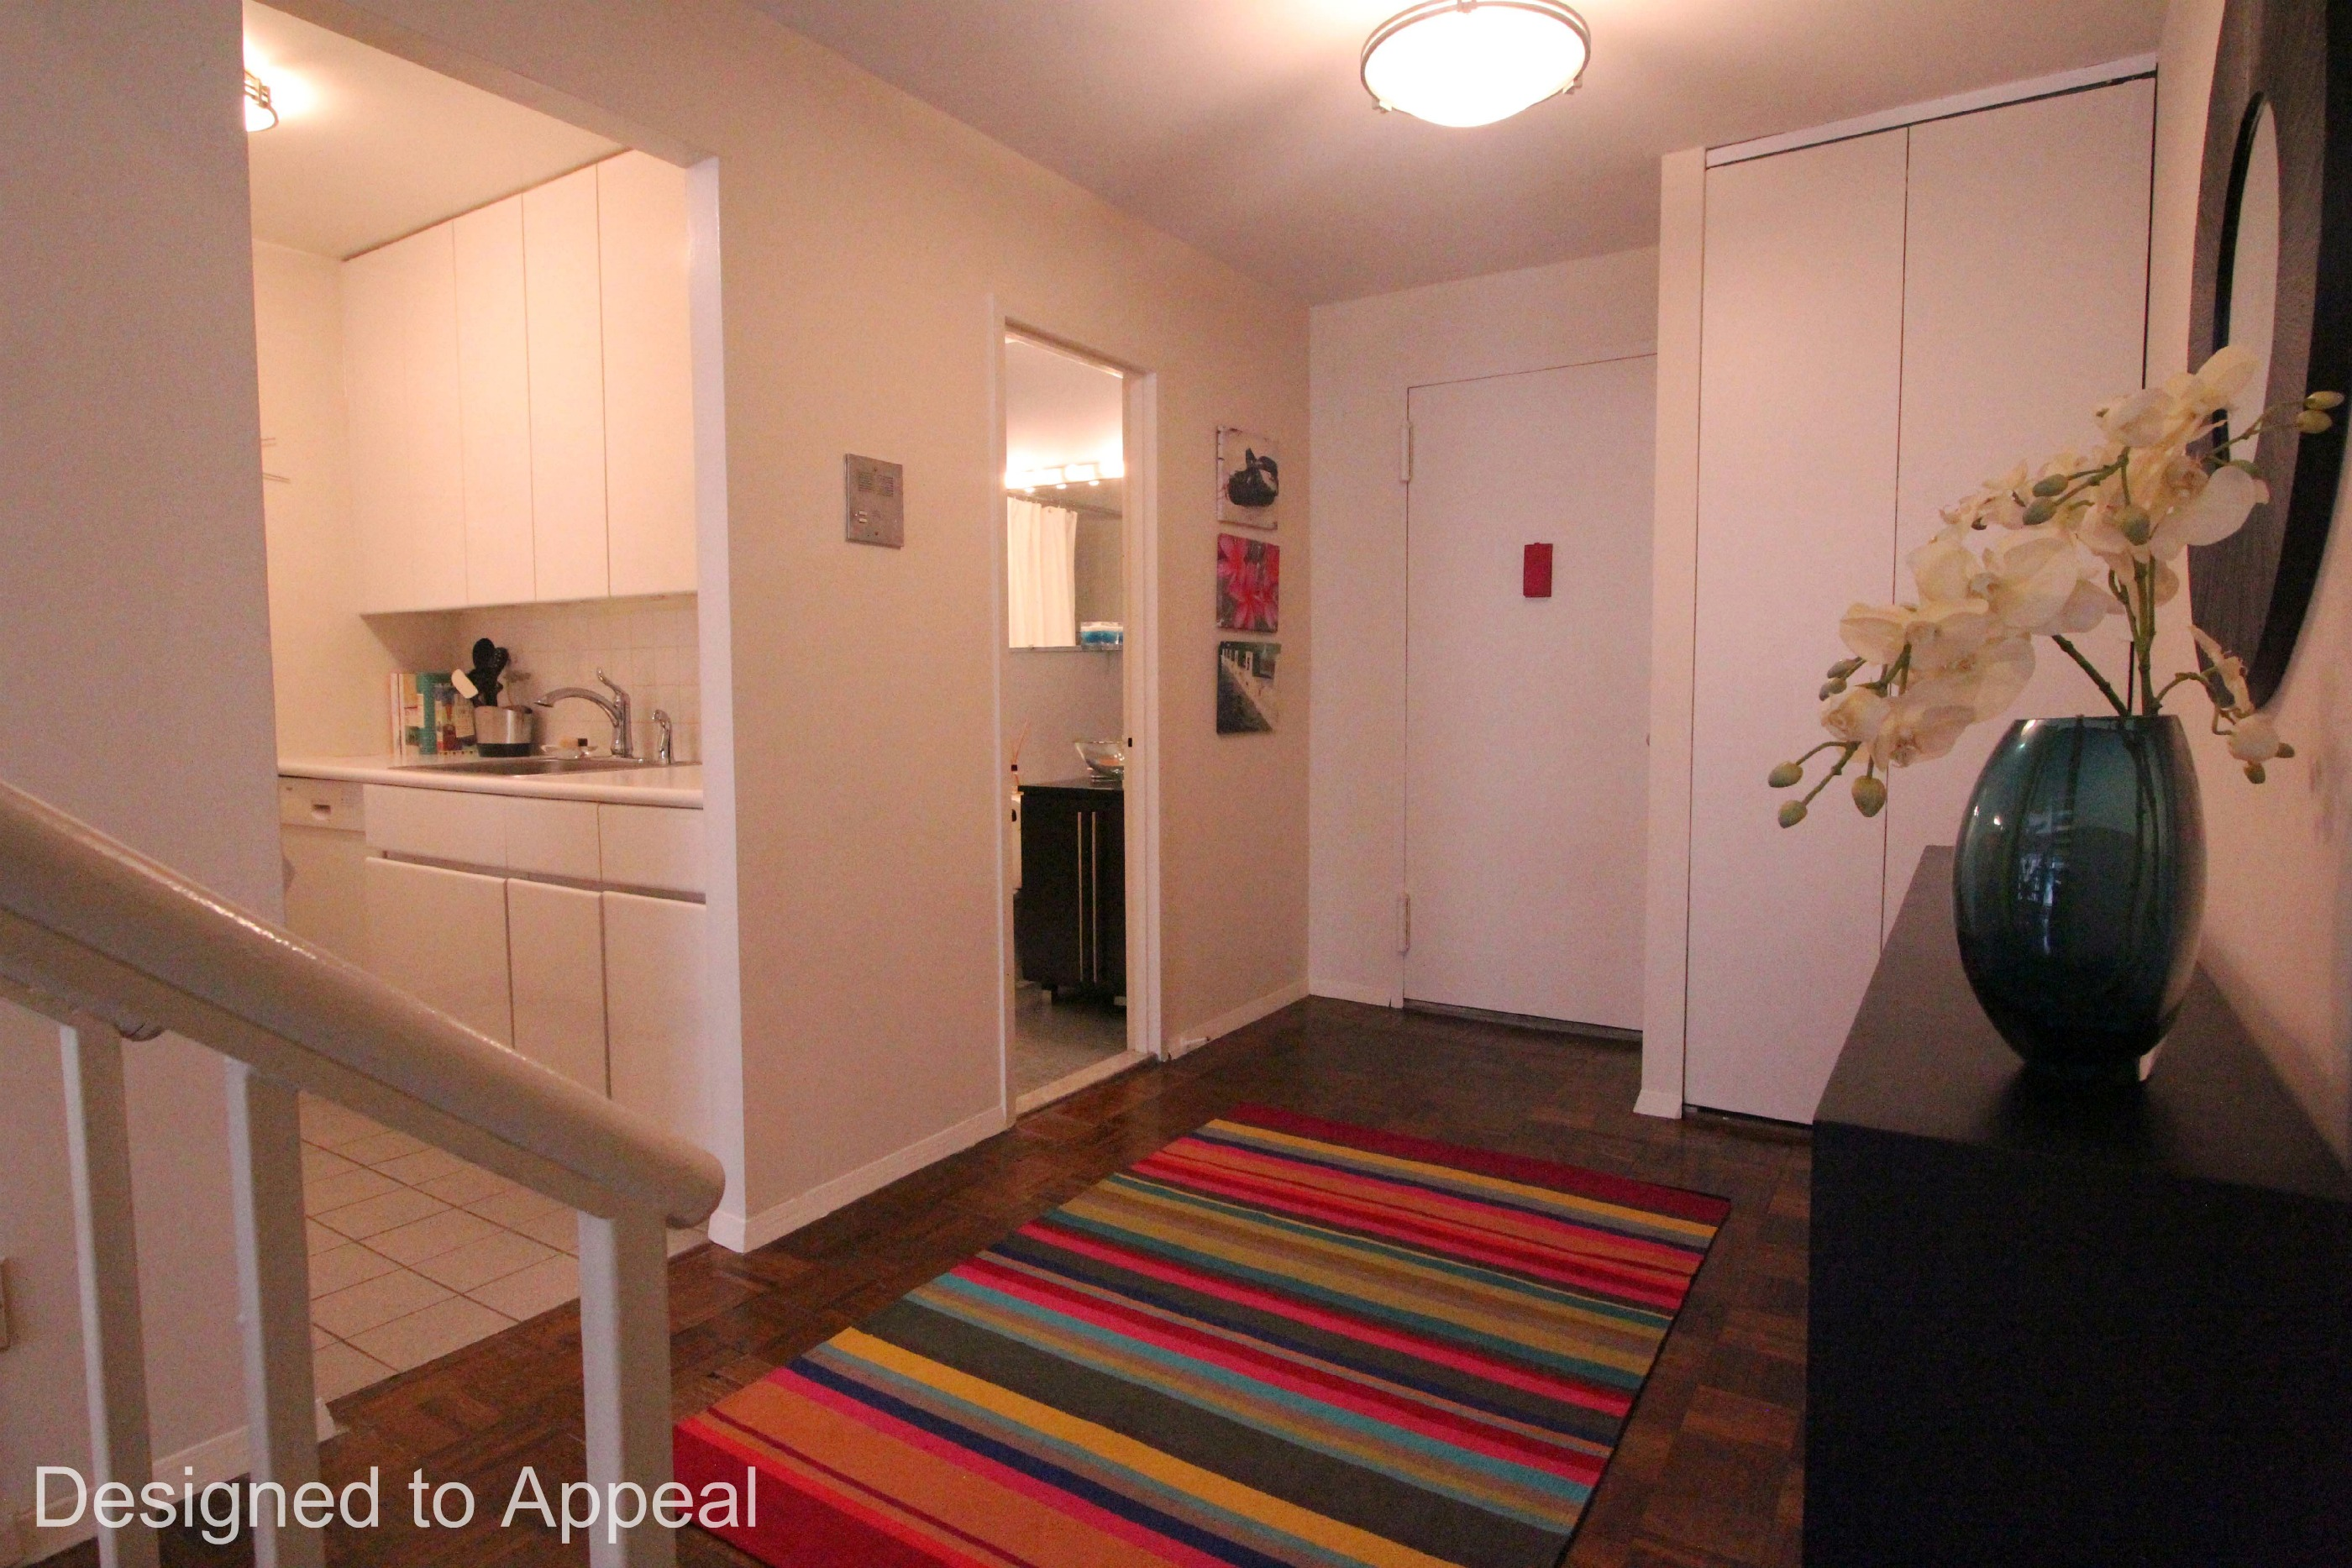 Area Rugs Tips for Selection and Placement